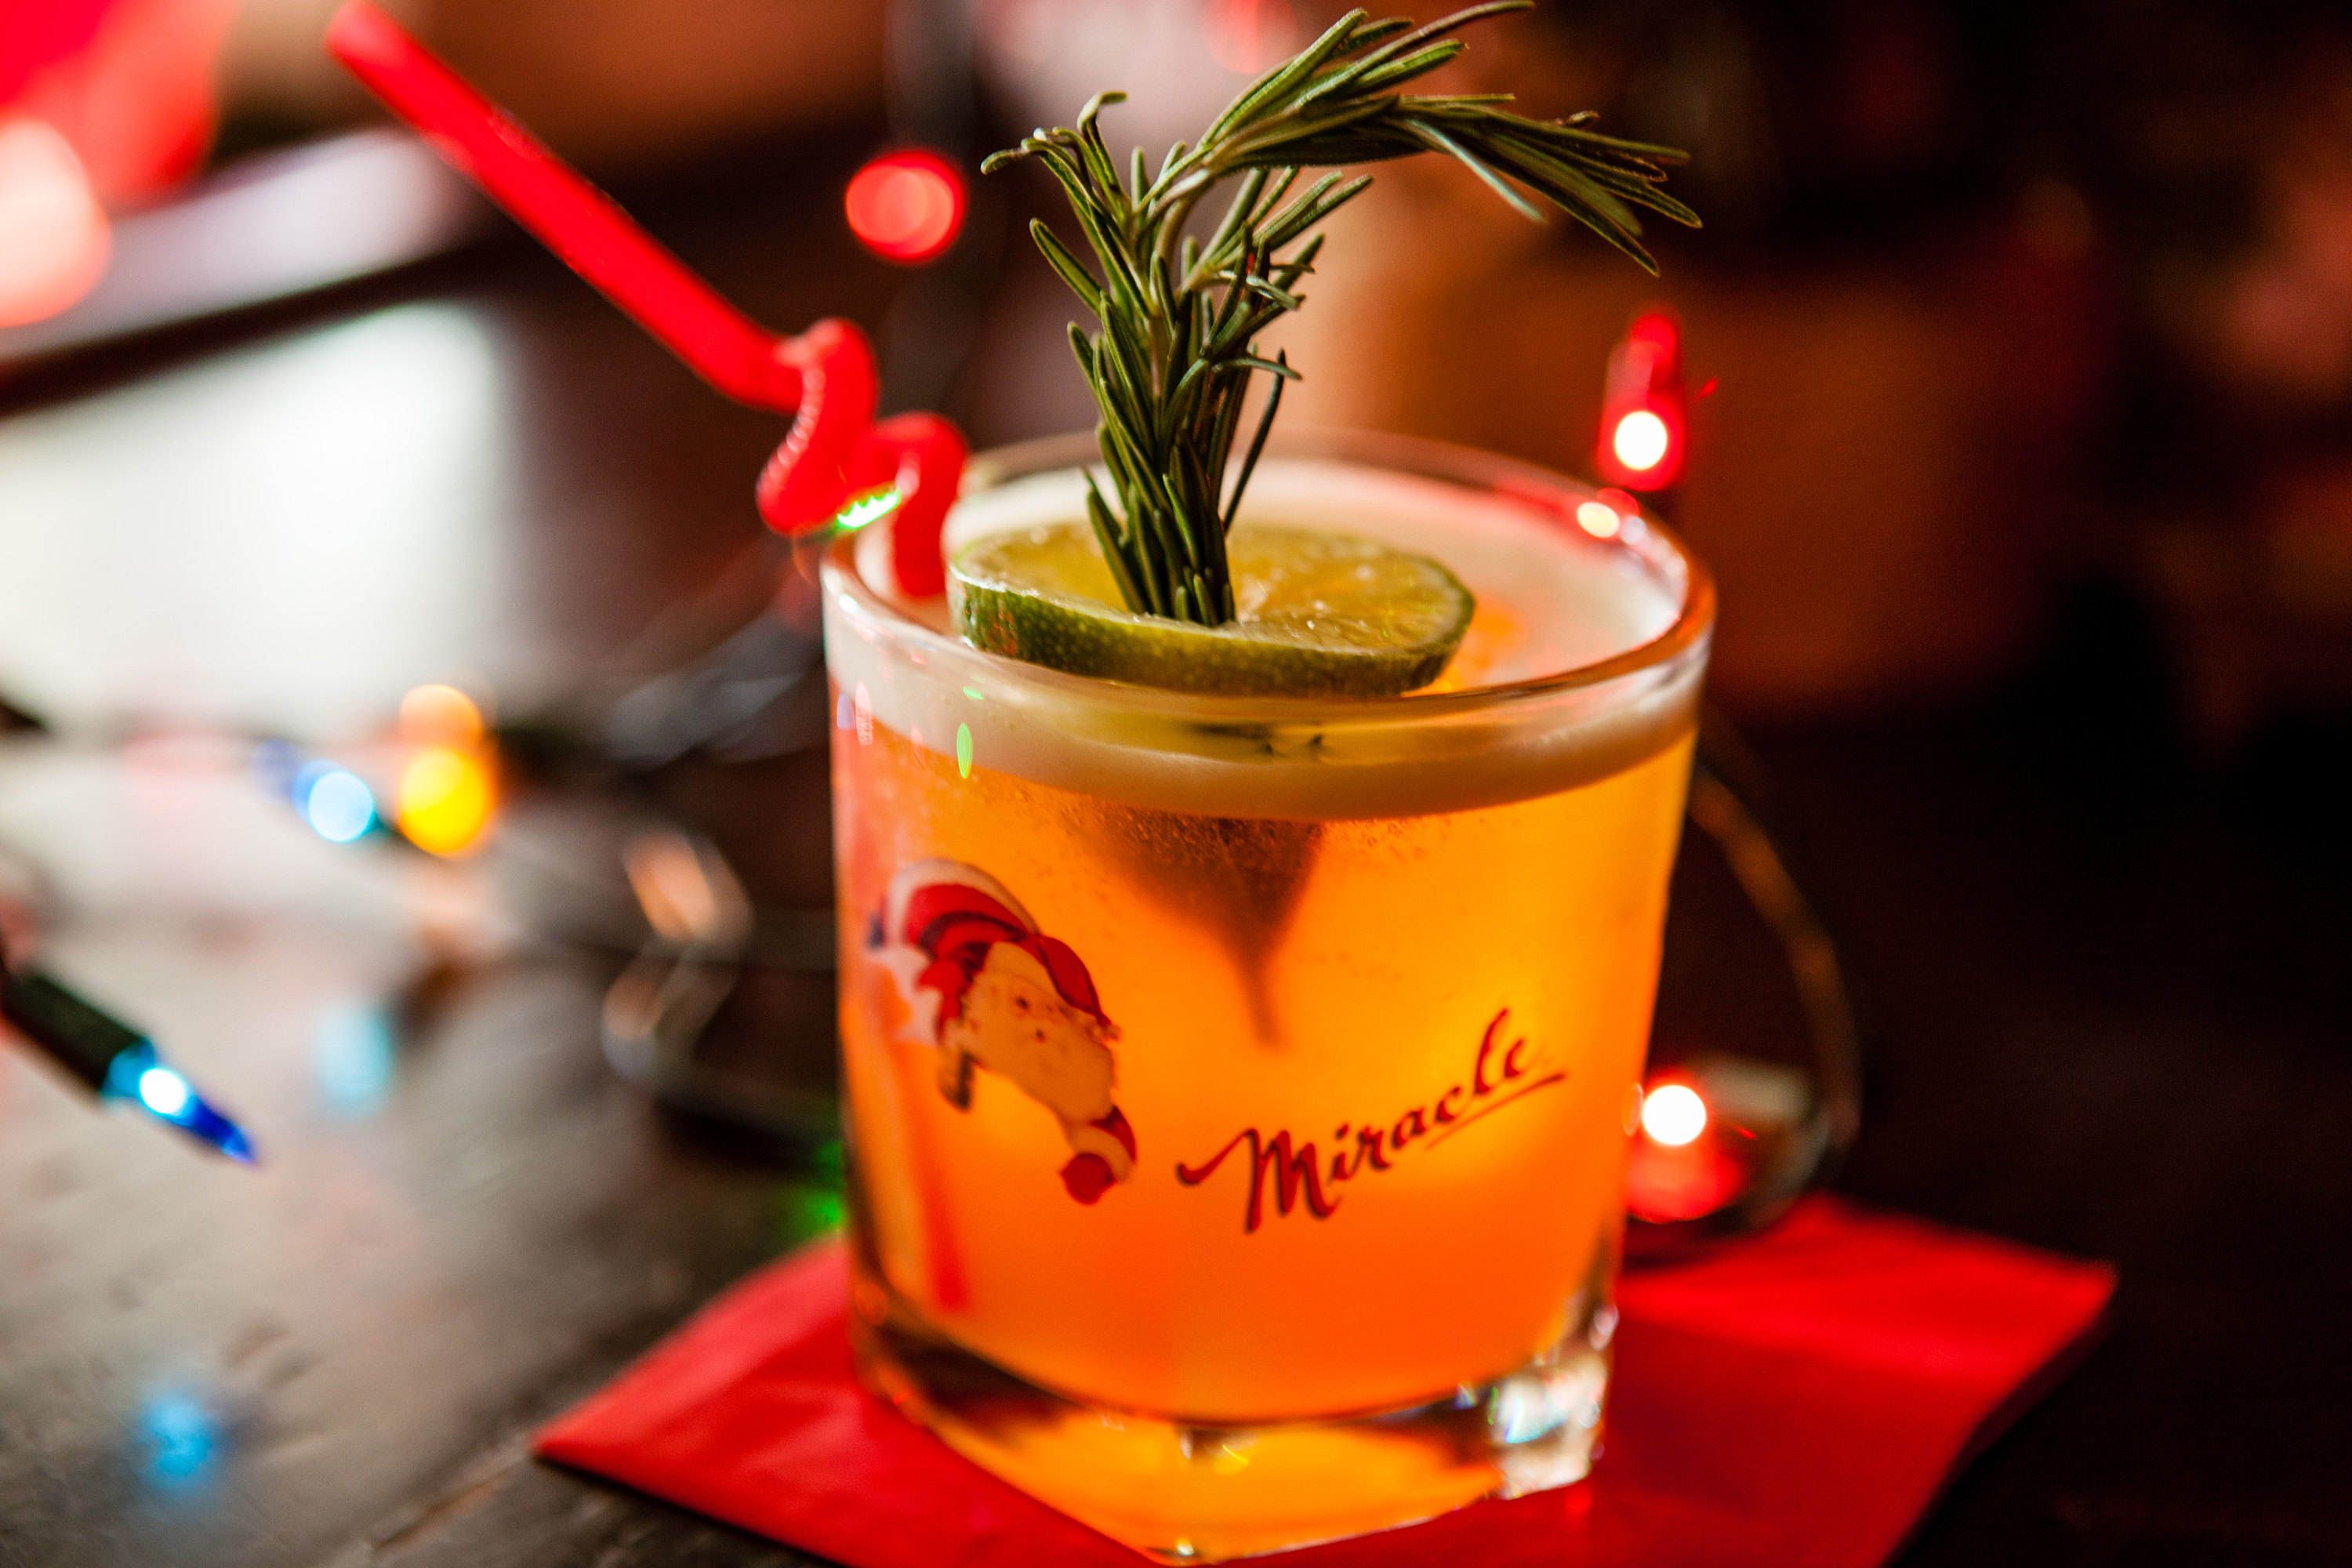 A Christmas-themed cocktail garnished with rosemary and lime